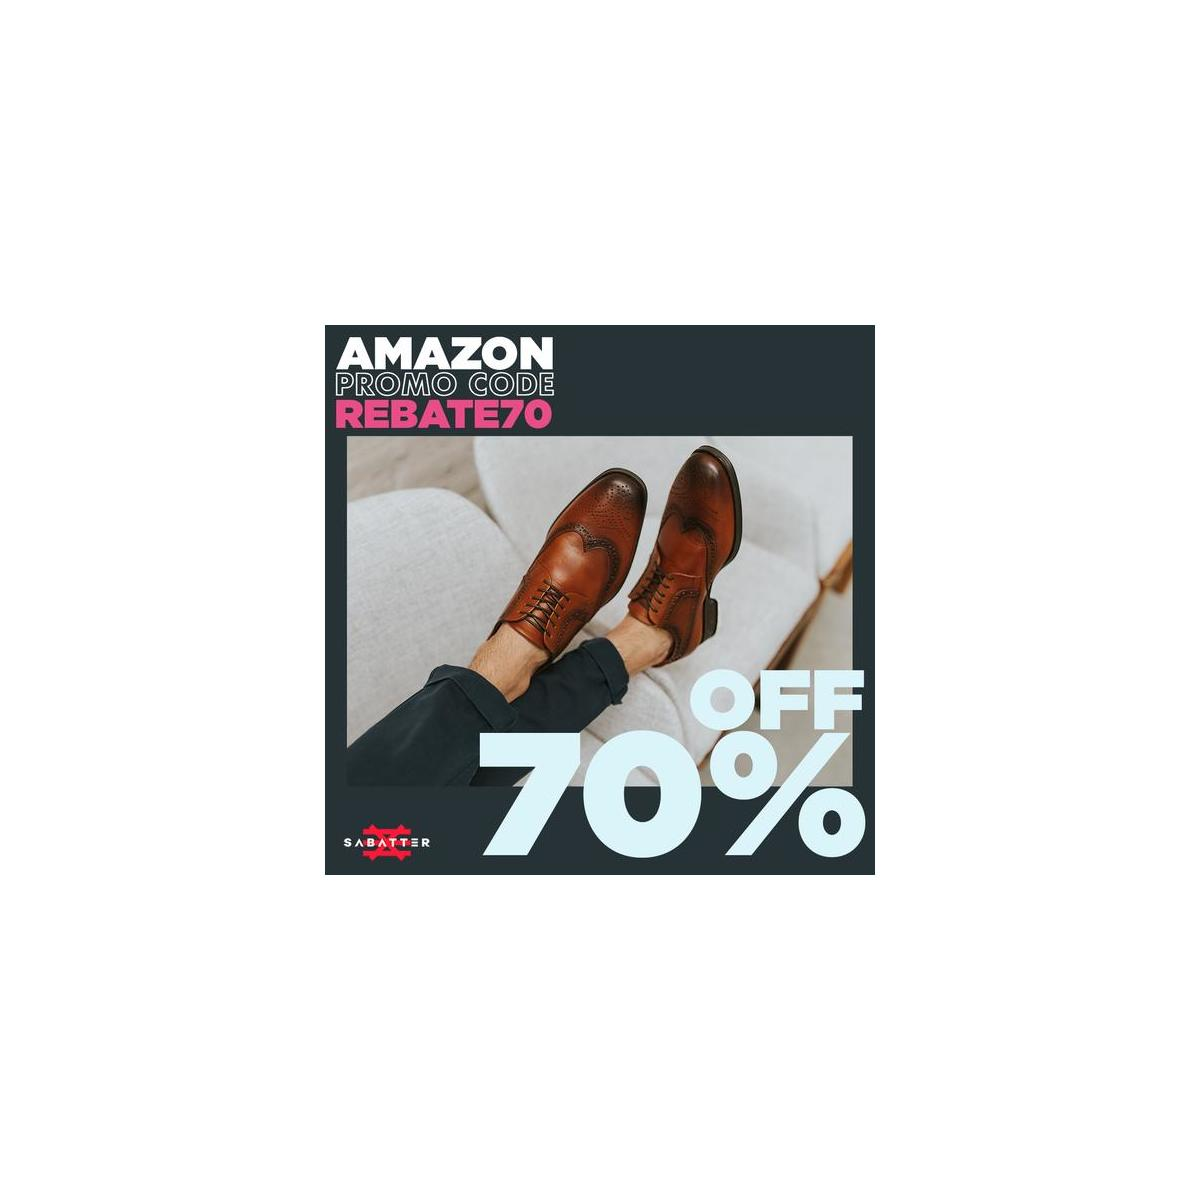 Sabatter Mens Oxford Dress Shoes - Genuine Leather Rounded Toe Derby Style Lace-Up Formal Perforated Wingtip Oxford with Double Flexion System Thermoconformed Memory Foam Insole - Lorenz (ALL VARIATIONS, ALL SIZES)